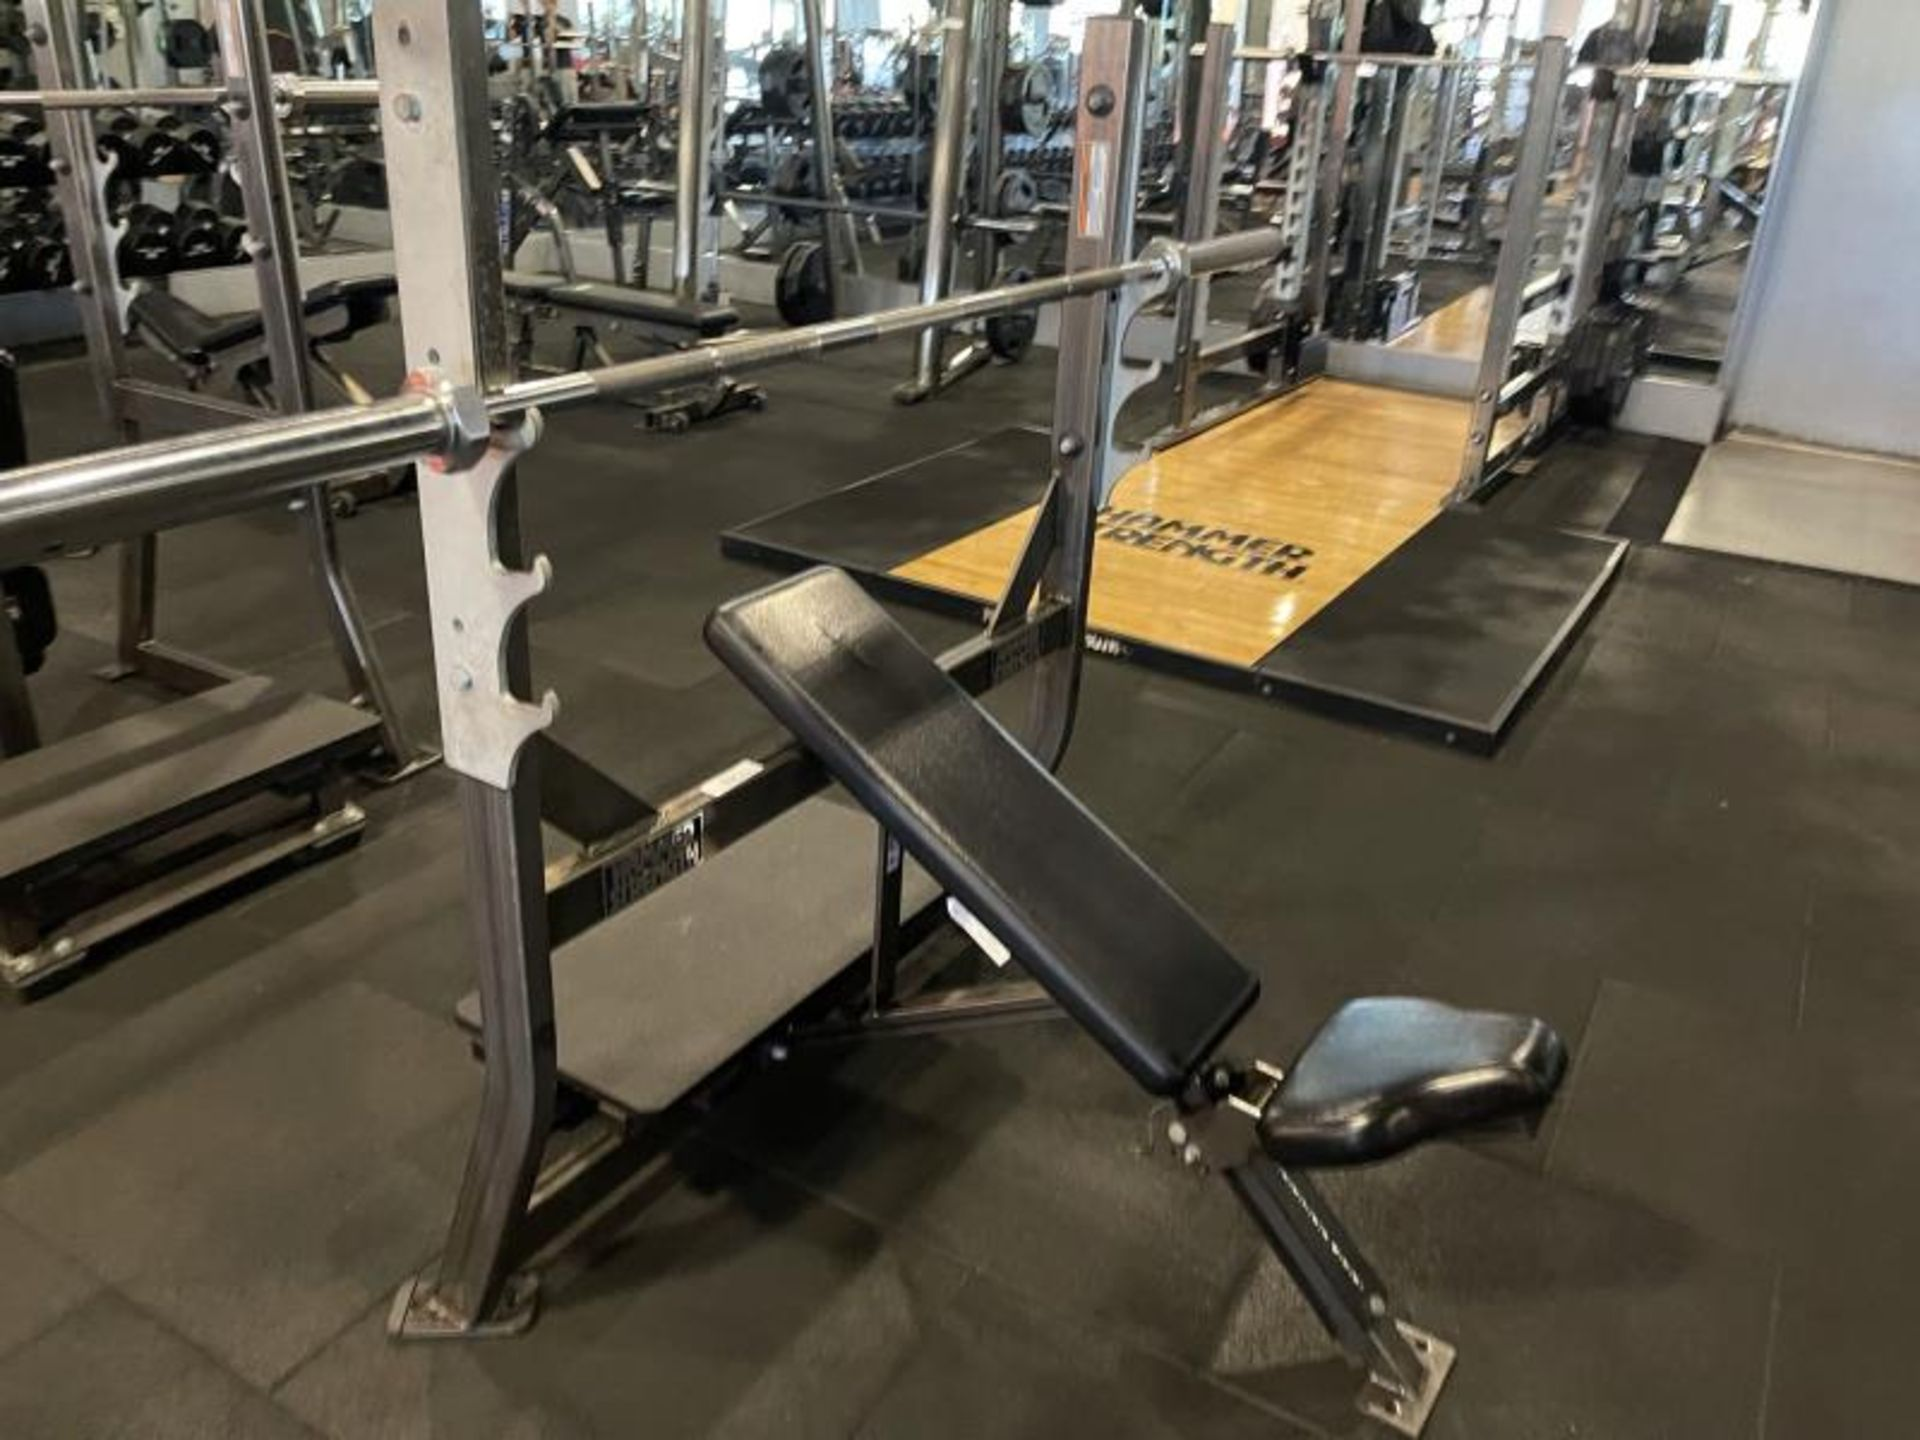 Hammer Strength with Bench, Rack, Bars